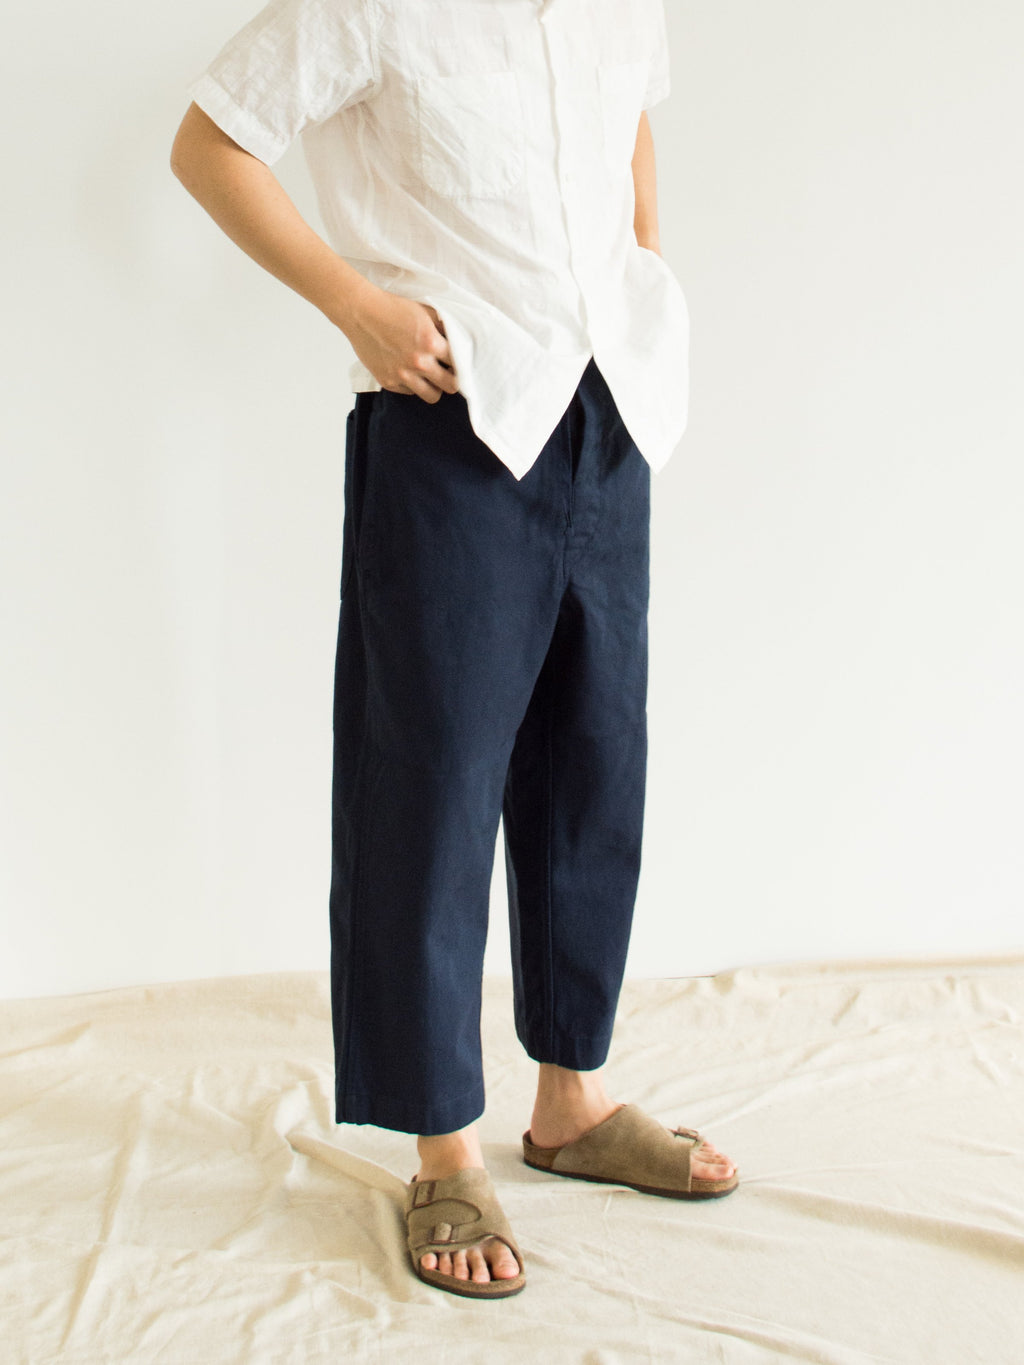 Namu Shop - Document Painter Pants